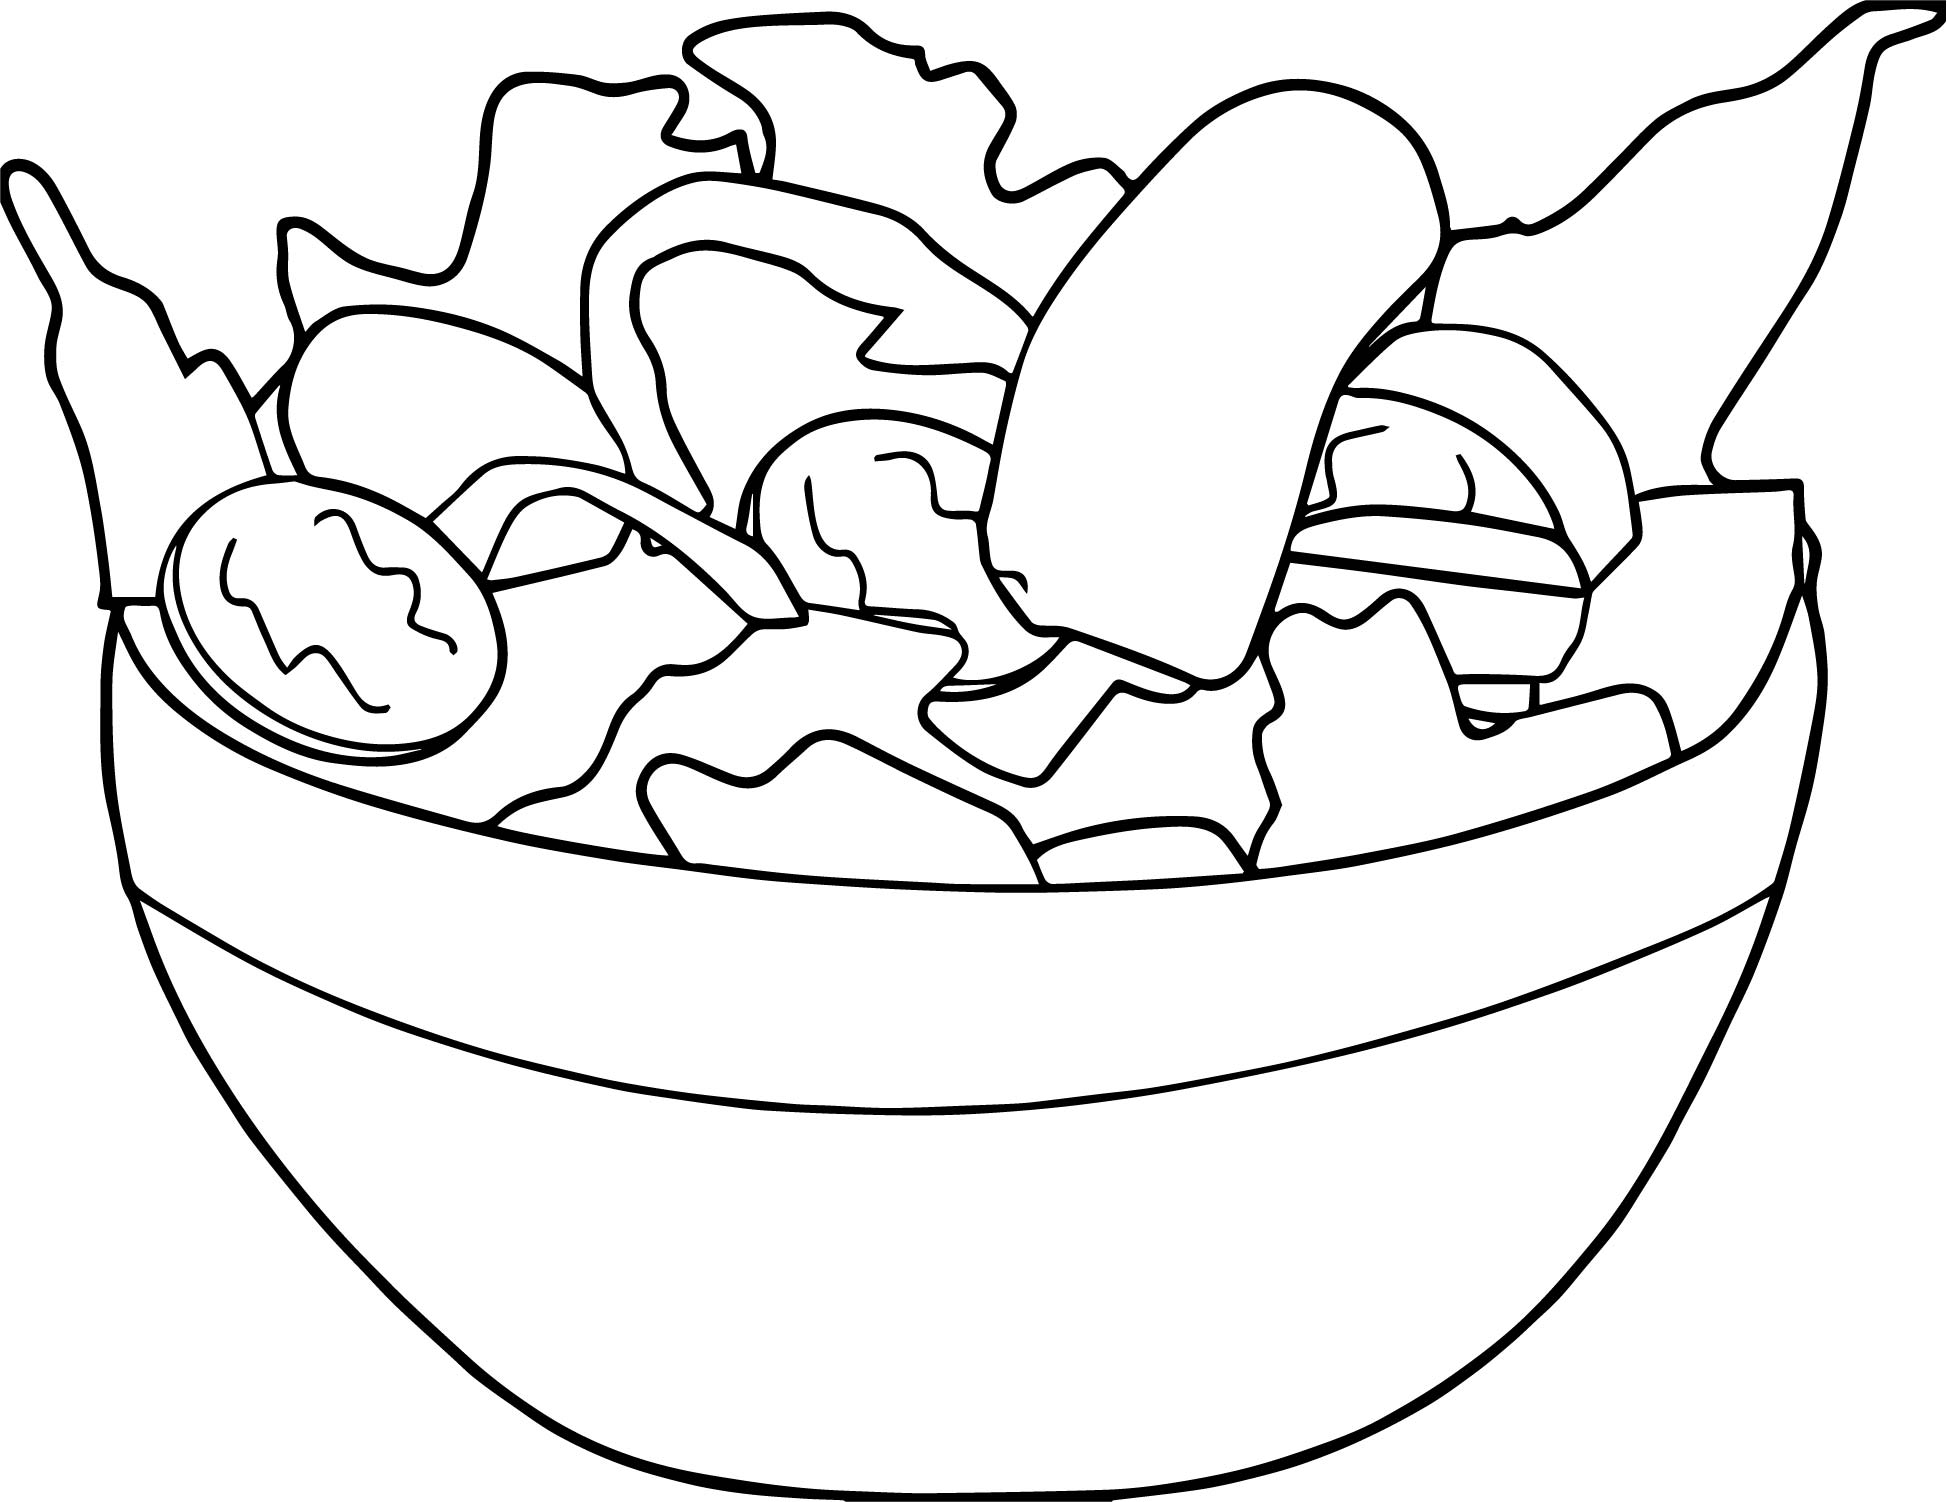 Salad Basket Coloring Page